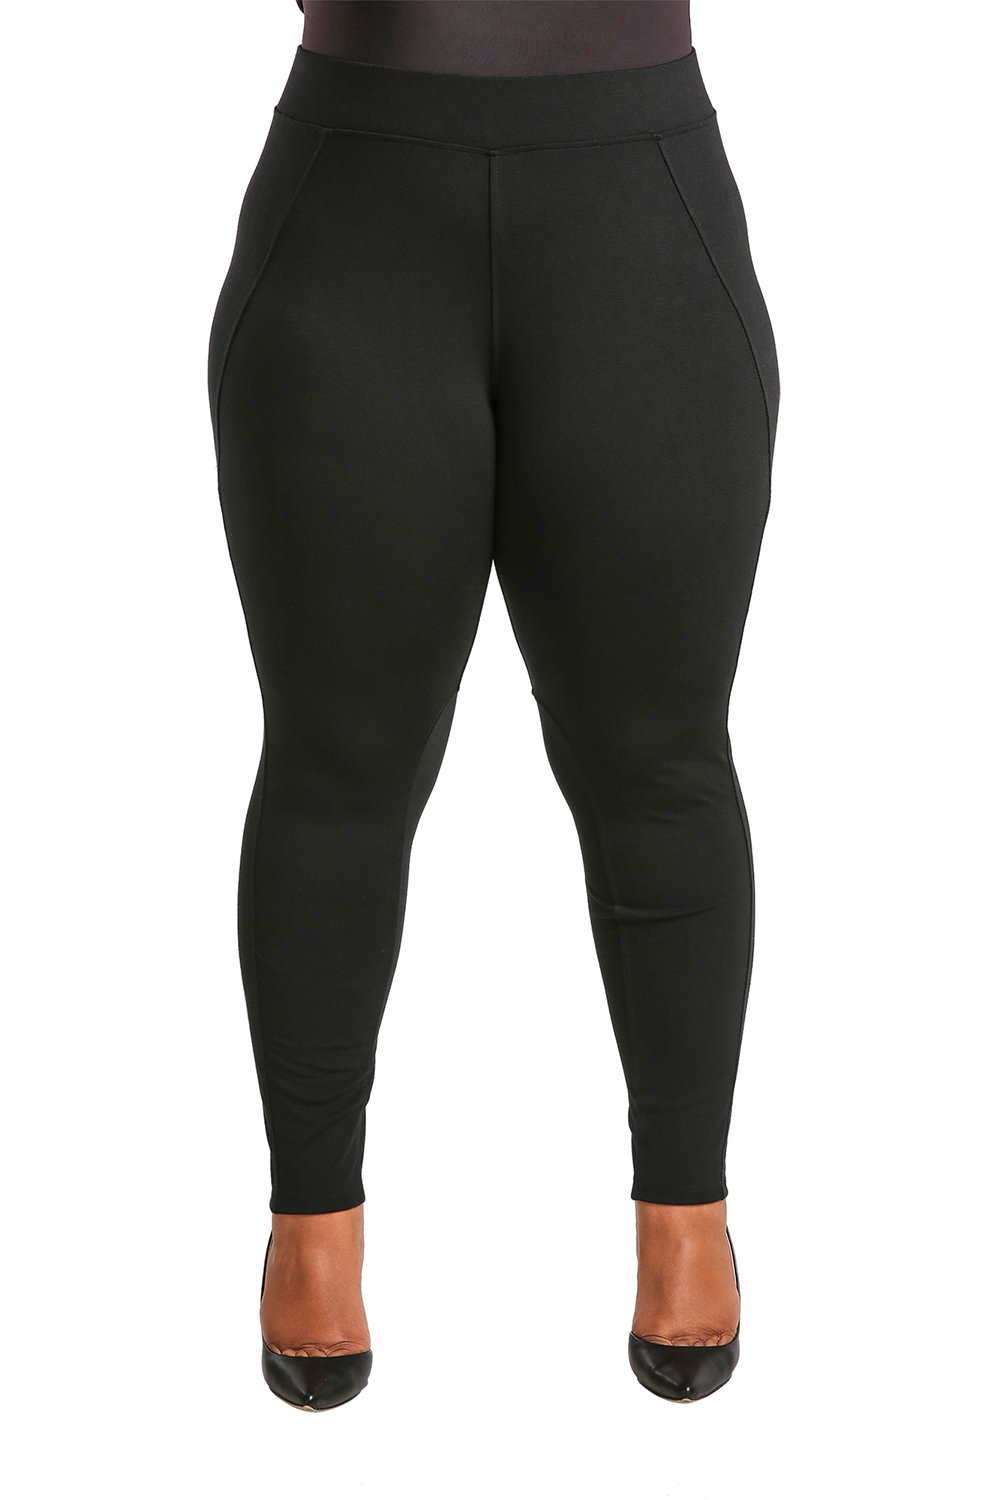 Poetic Justice Plus Size Women's Curvy Fit Black Stretch Ponte Pull On Moto Legging Size 2X